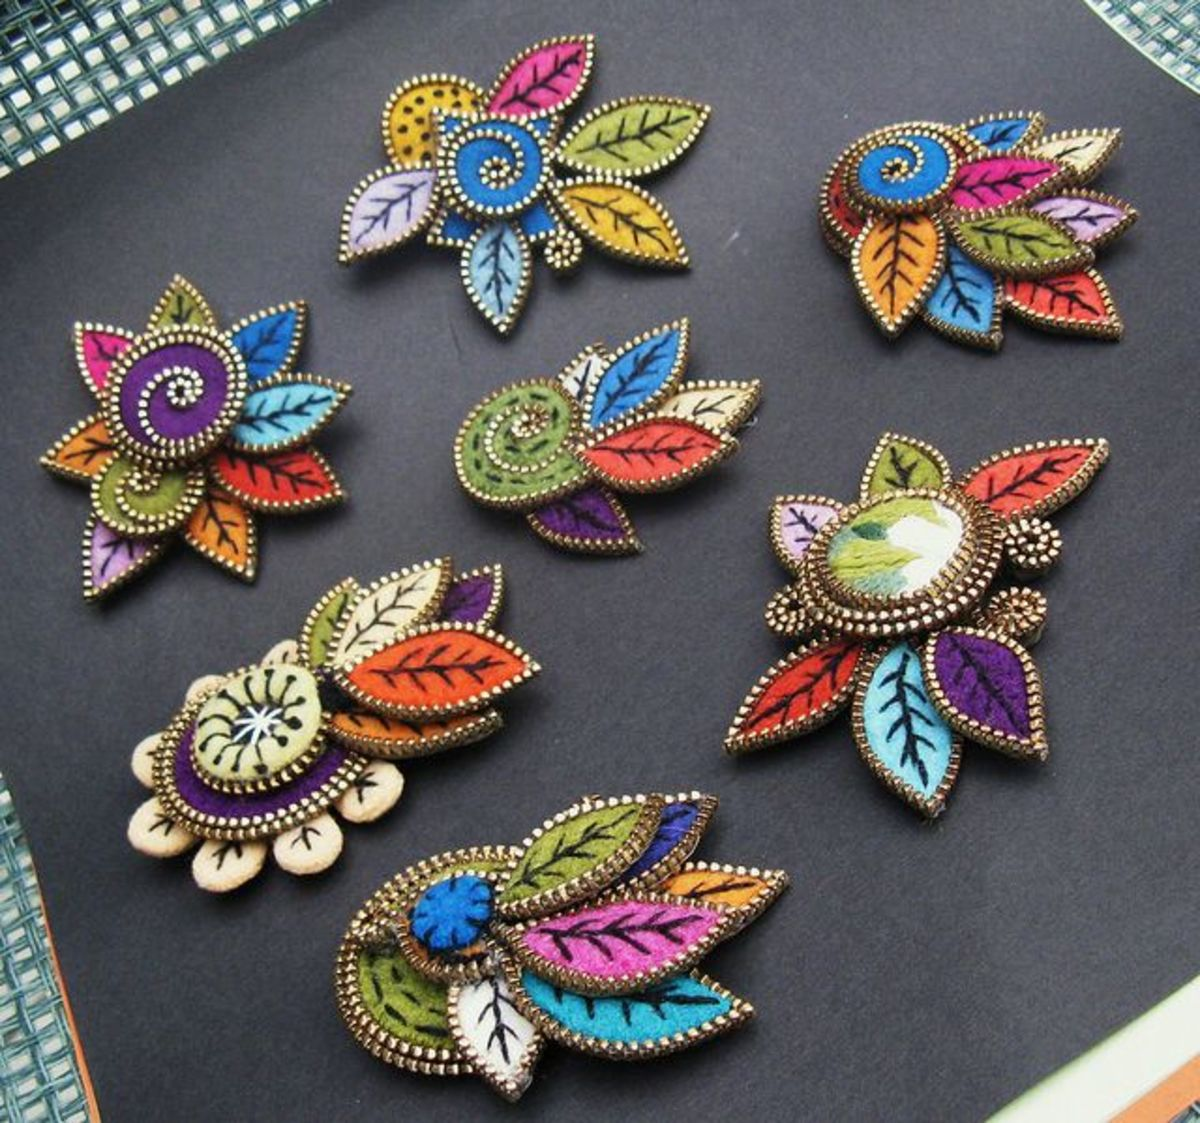 These gorgeous brooches are made with embroidered felt and zippers.